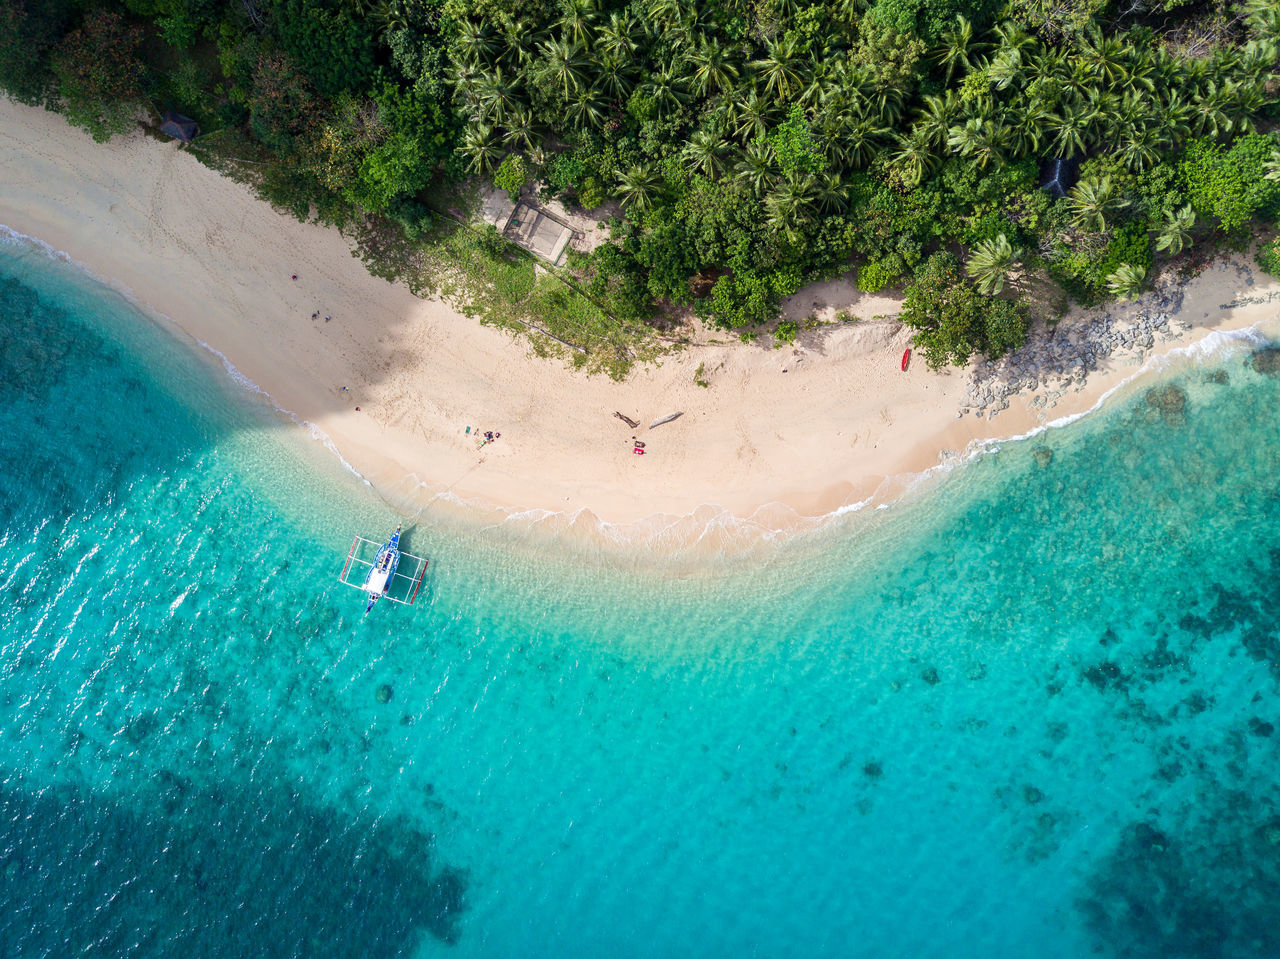 Beach Beauty In Nature Coral Day Drone  Dronephotography Eyeem Philippines Nature No People Outdoors Palawan Philippines Swimming Pool Tree Water